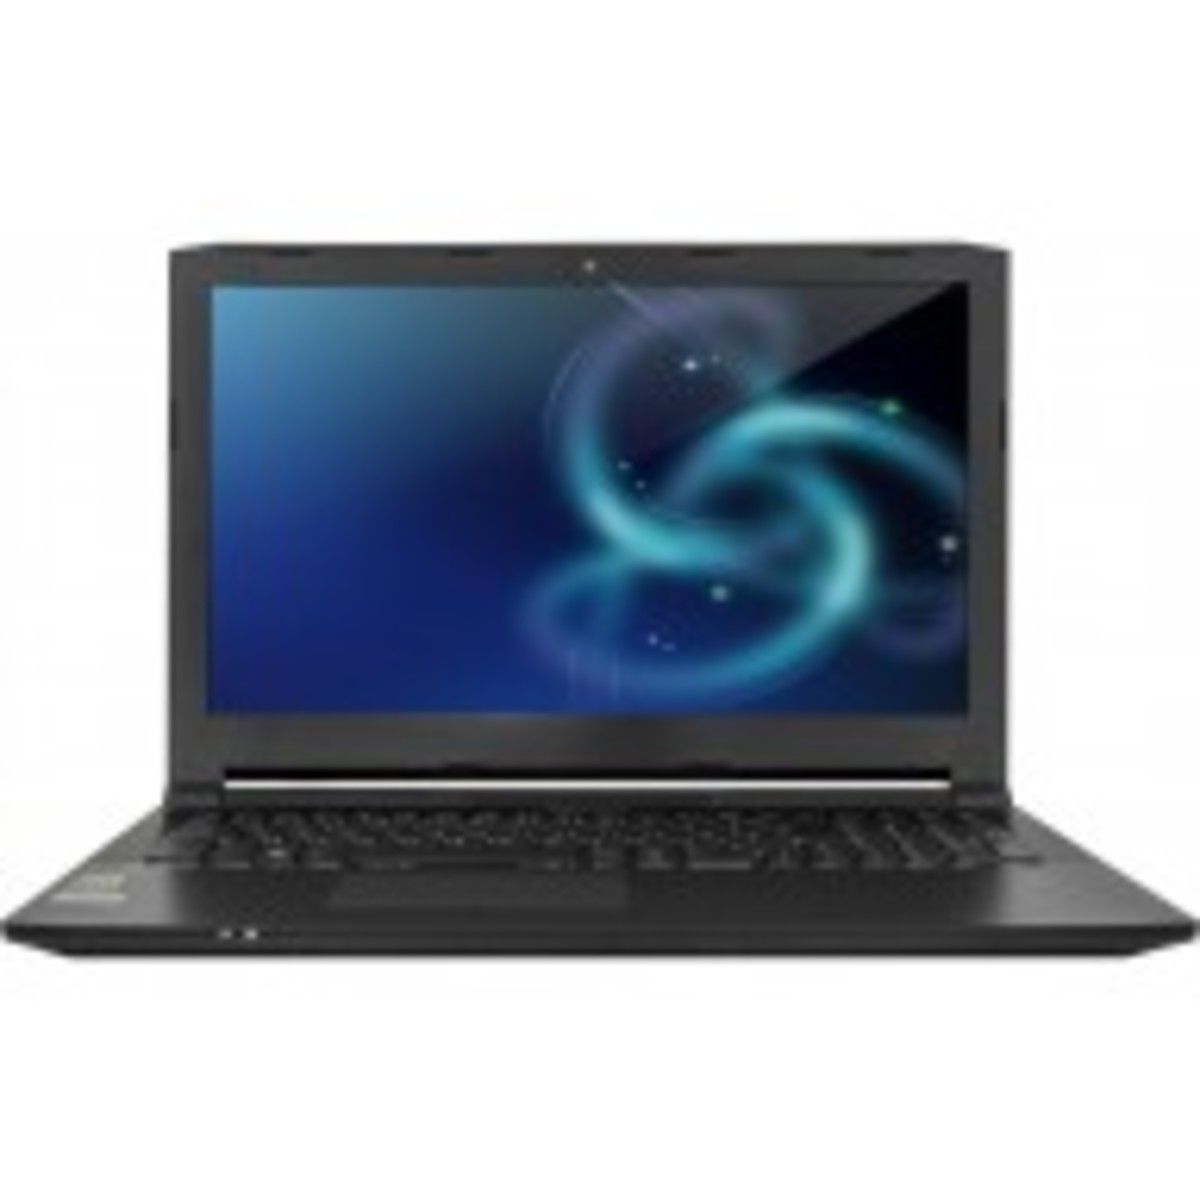 Acer's Falcon LX15